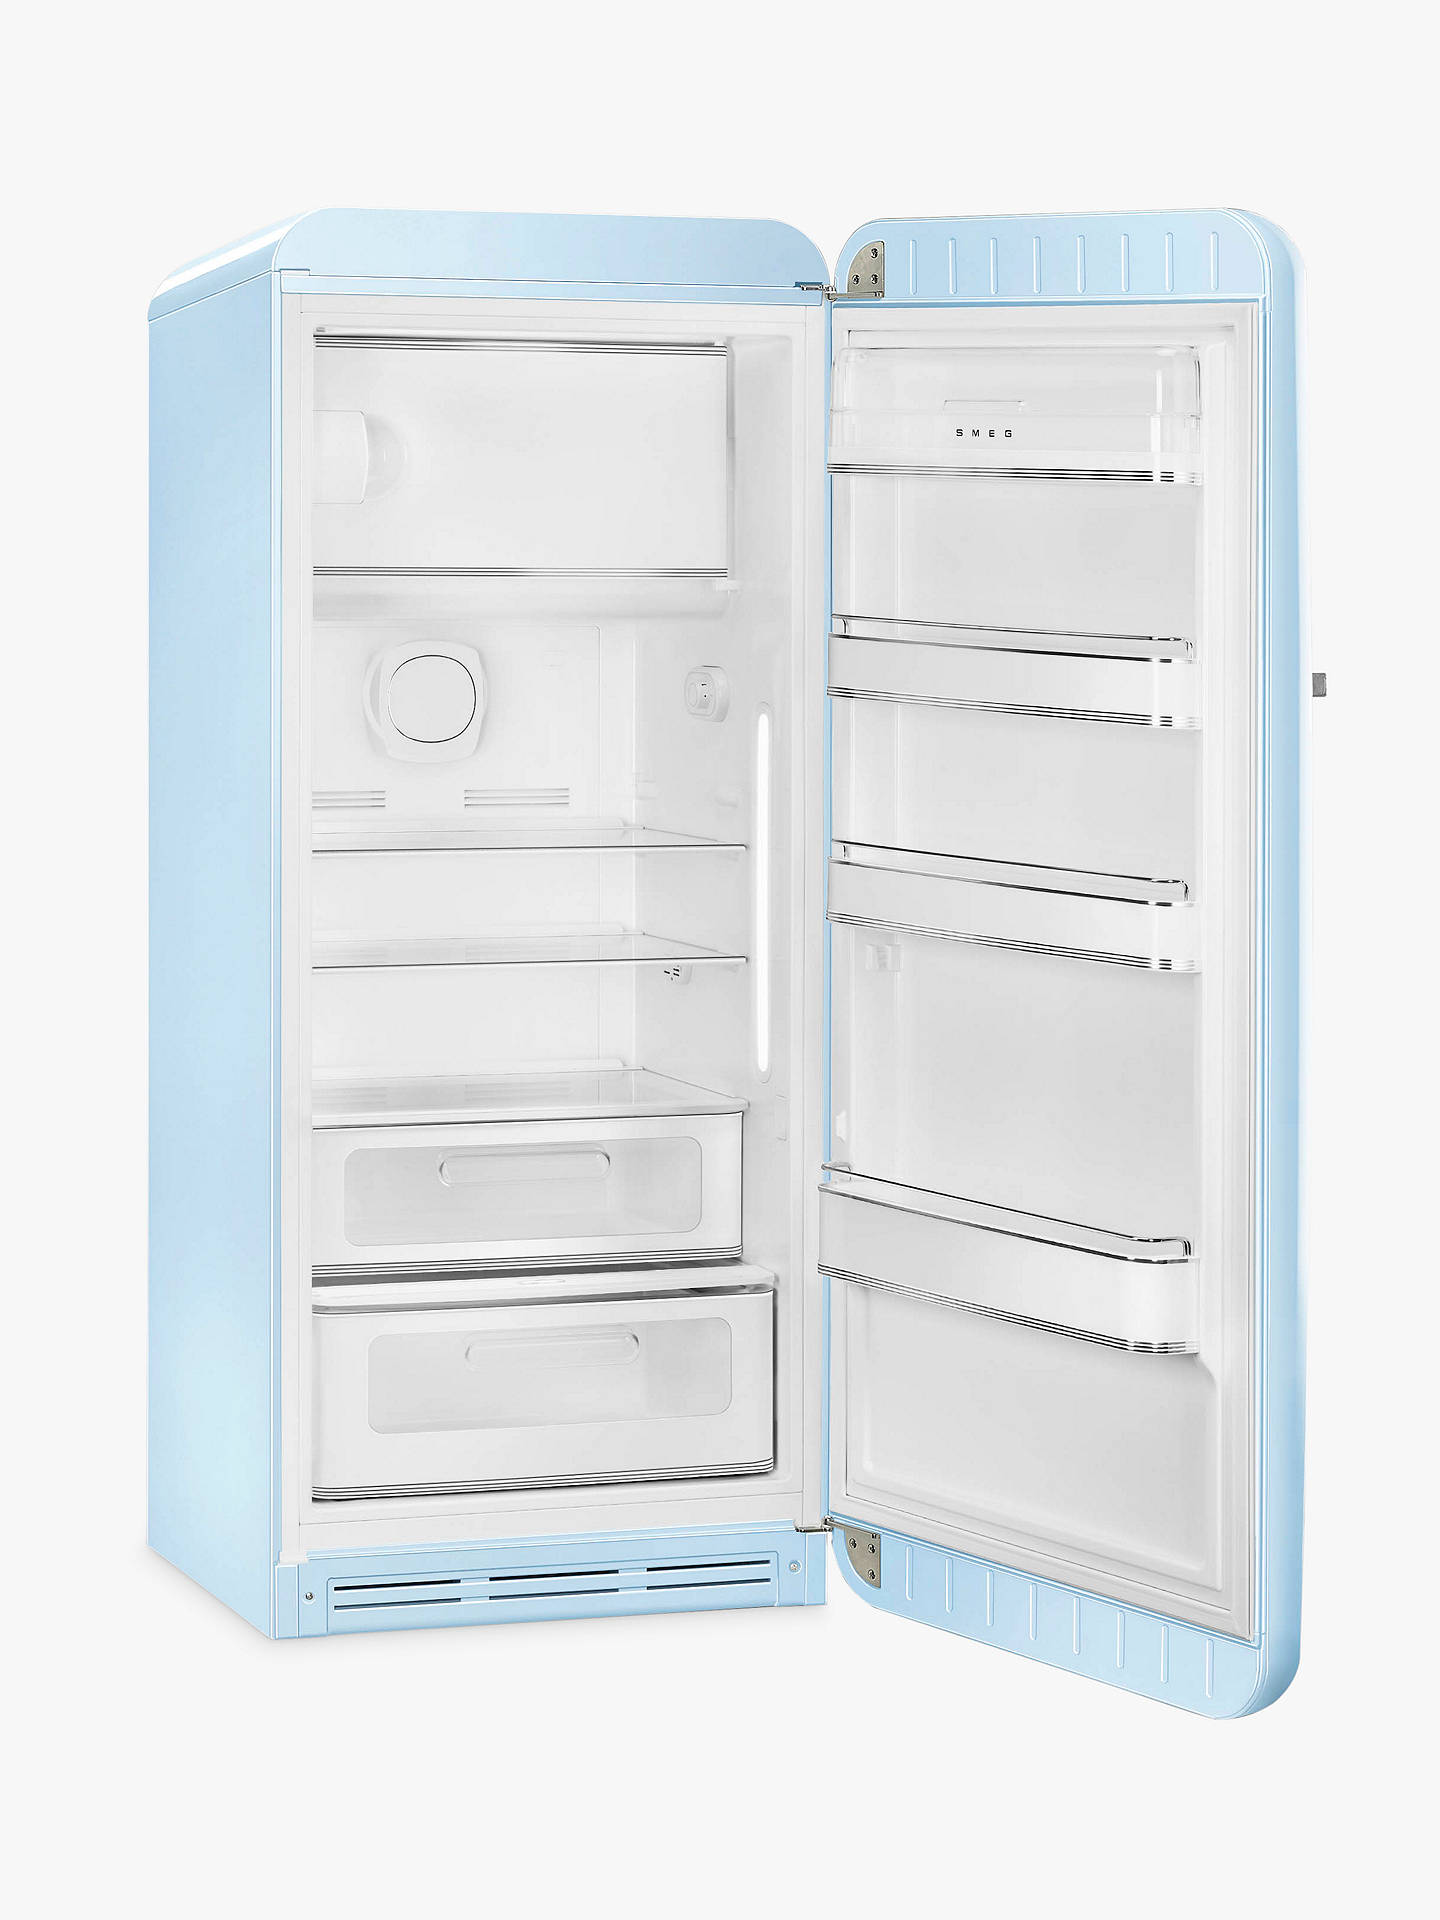 BuySmeg FAB28RPB3UK Freestanding Fridge with Freezer Compartment, A+++ Energy Rating, 60cm Wide, Right-Hand Hinge, Pastel Blue Online at johnlewis.com